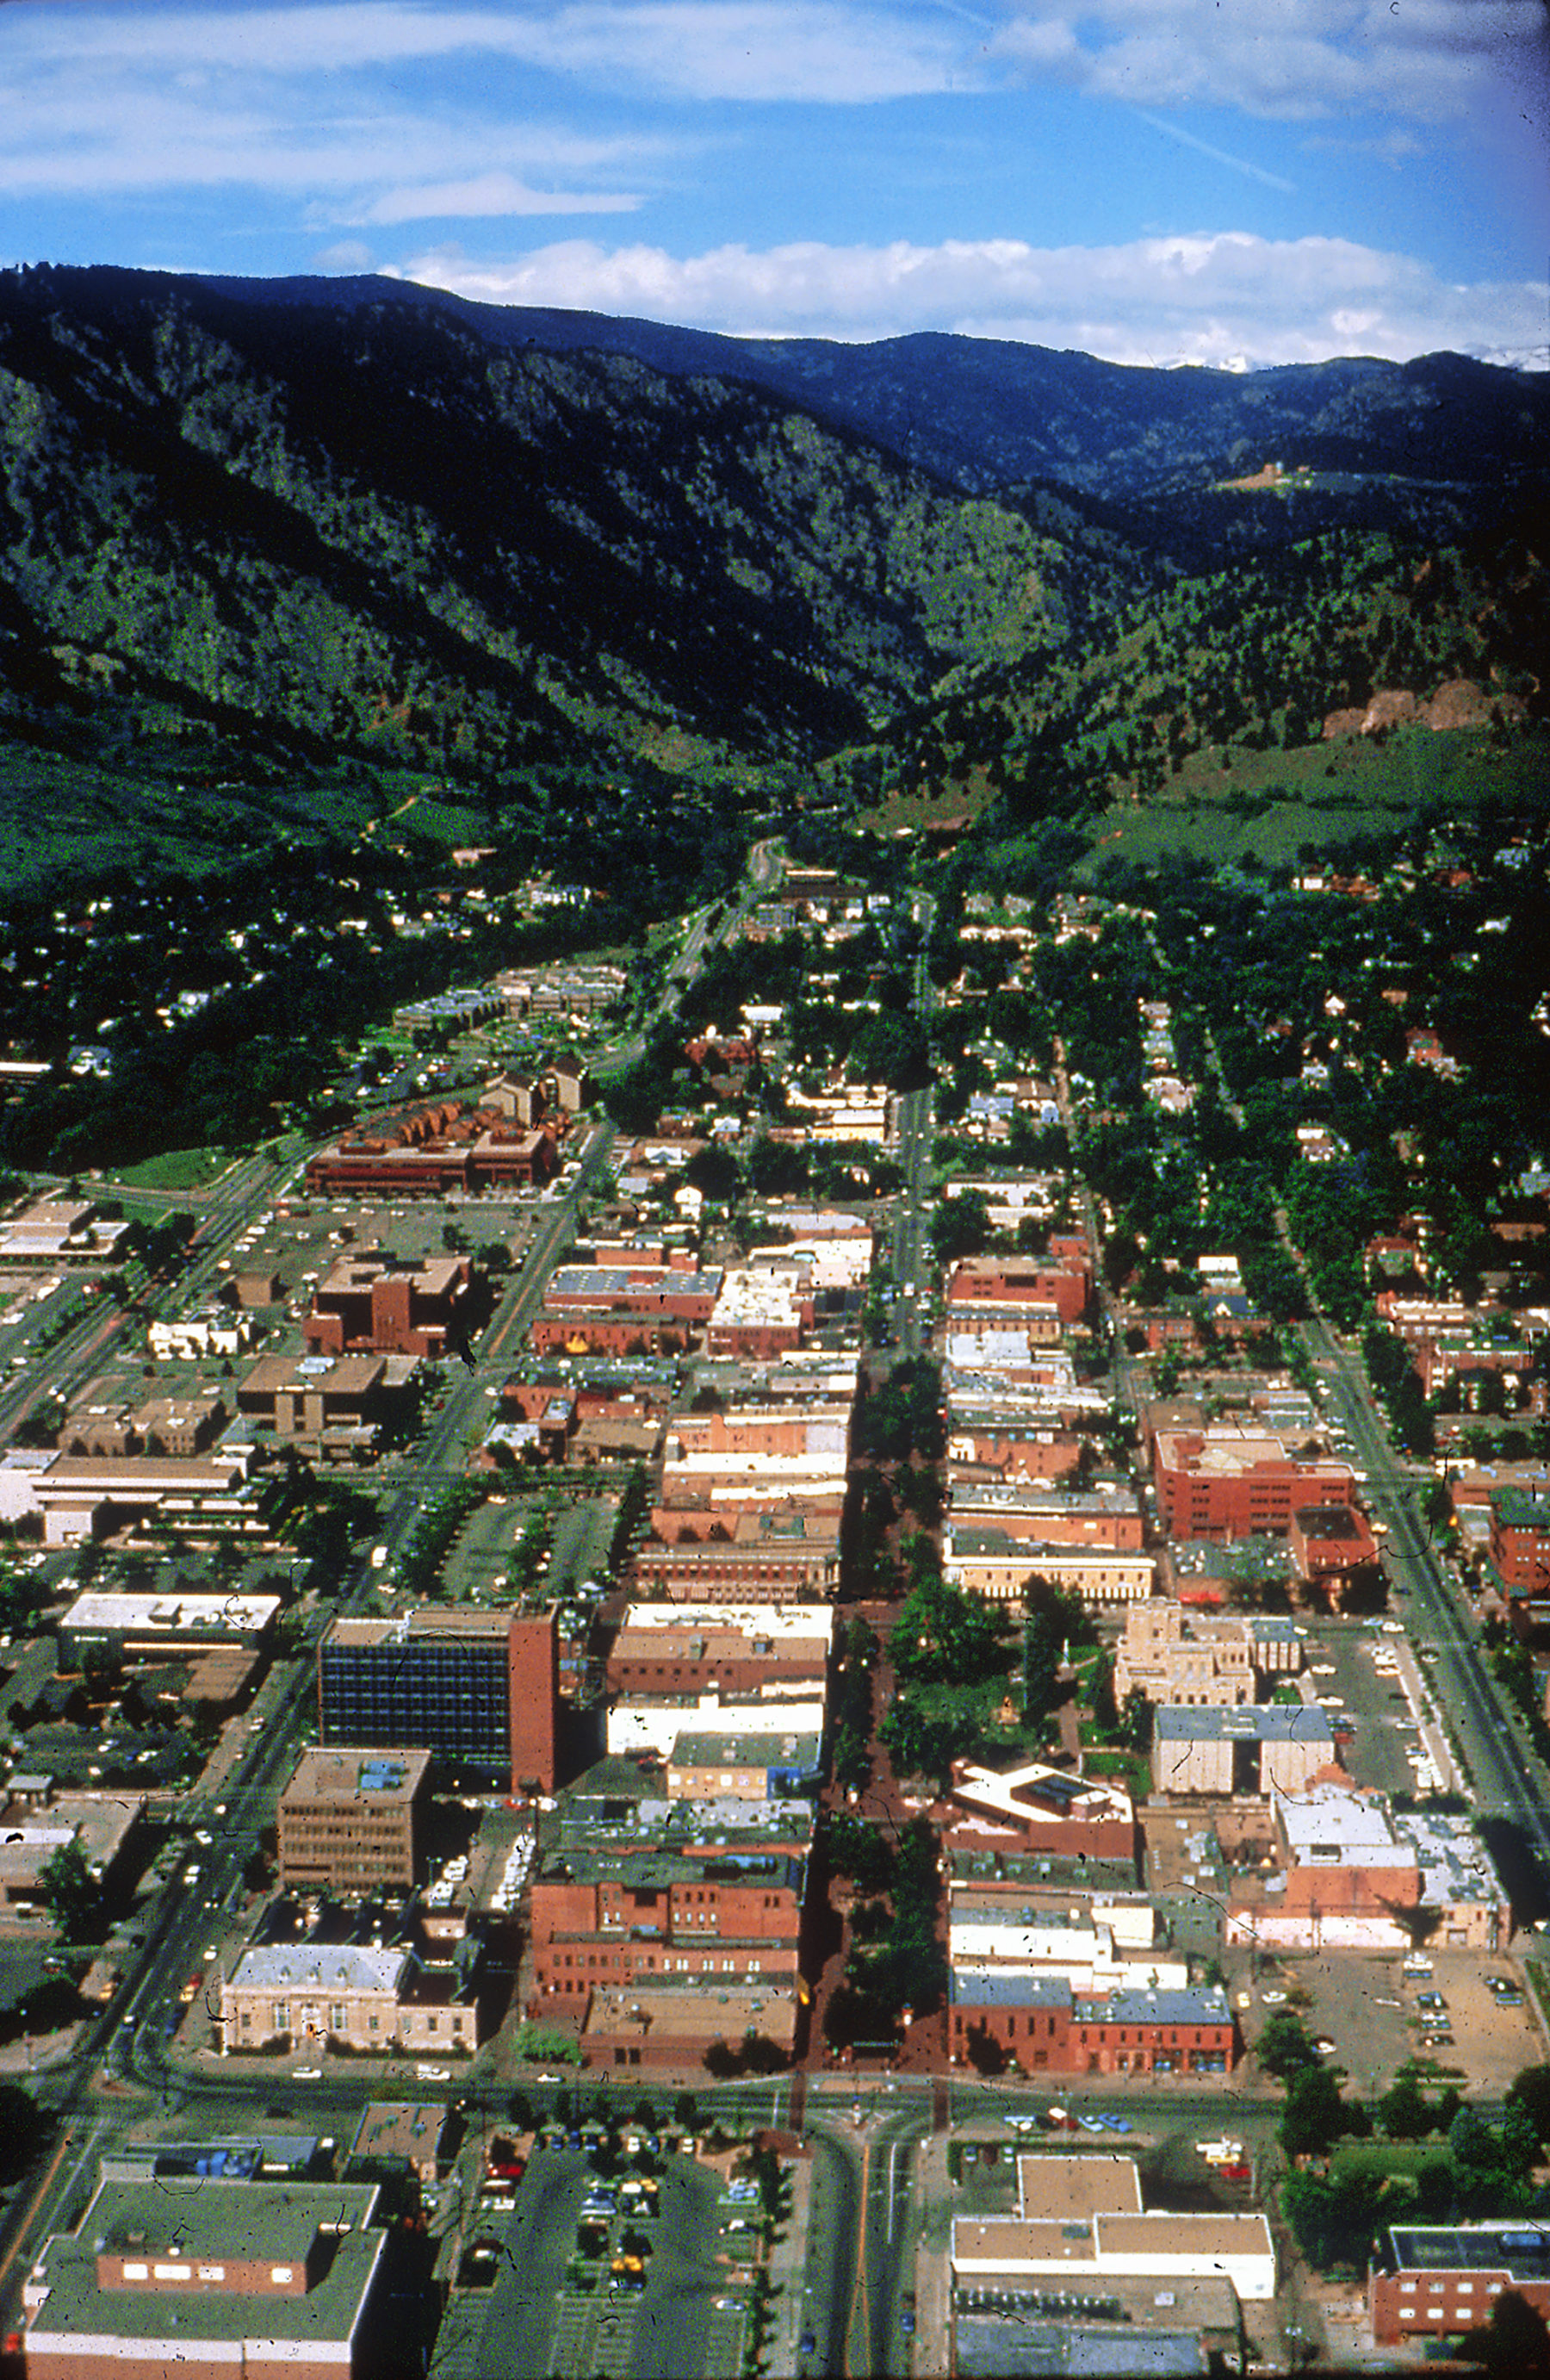 aerial photo of the street looking towards the mountatins